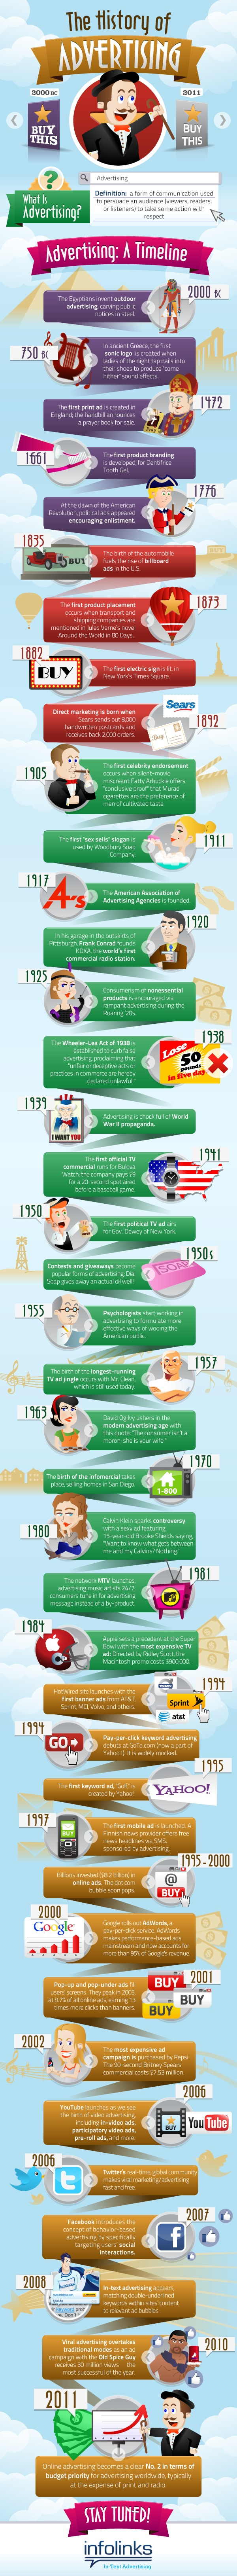 http://5.mshcdn.com/wp-content/uploads/2011/12/history-of-advertising.jpg